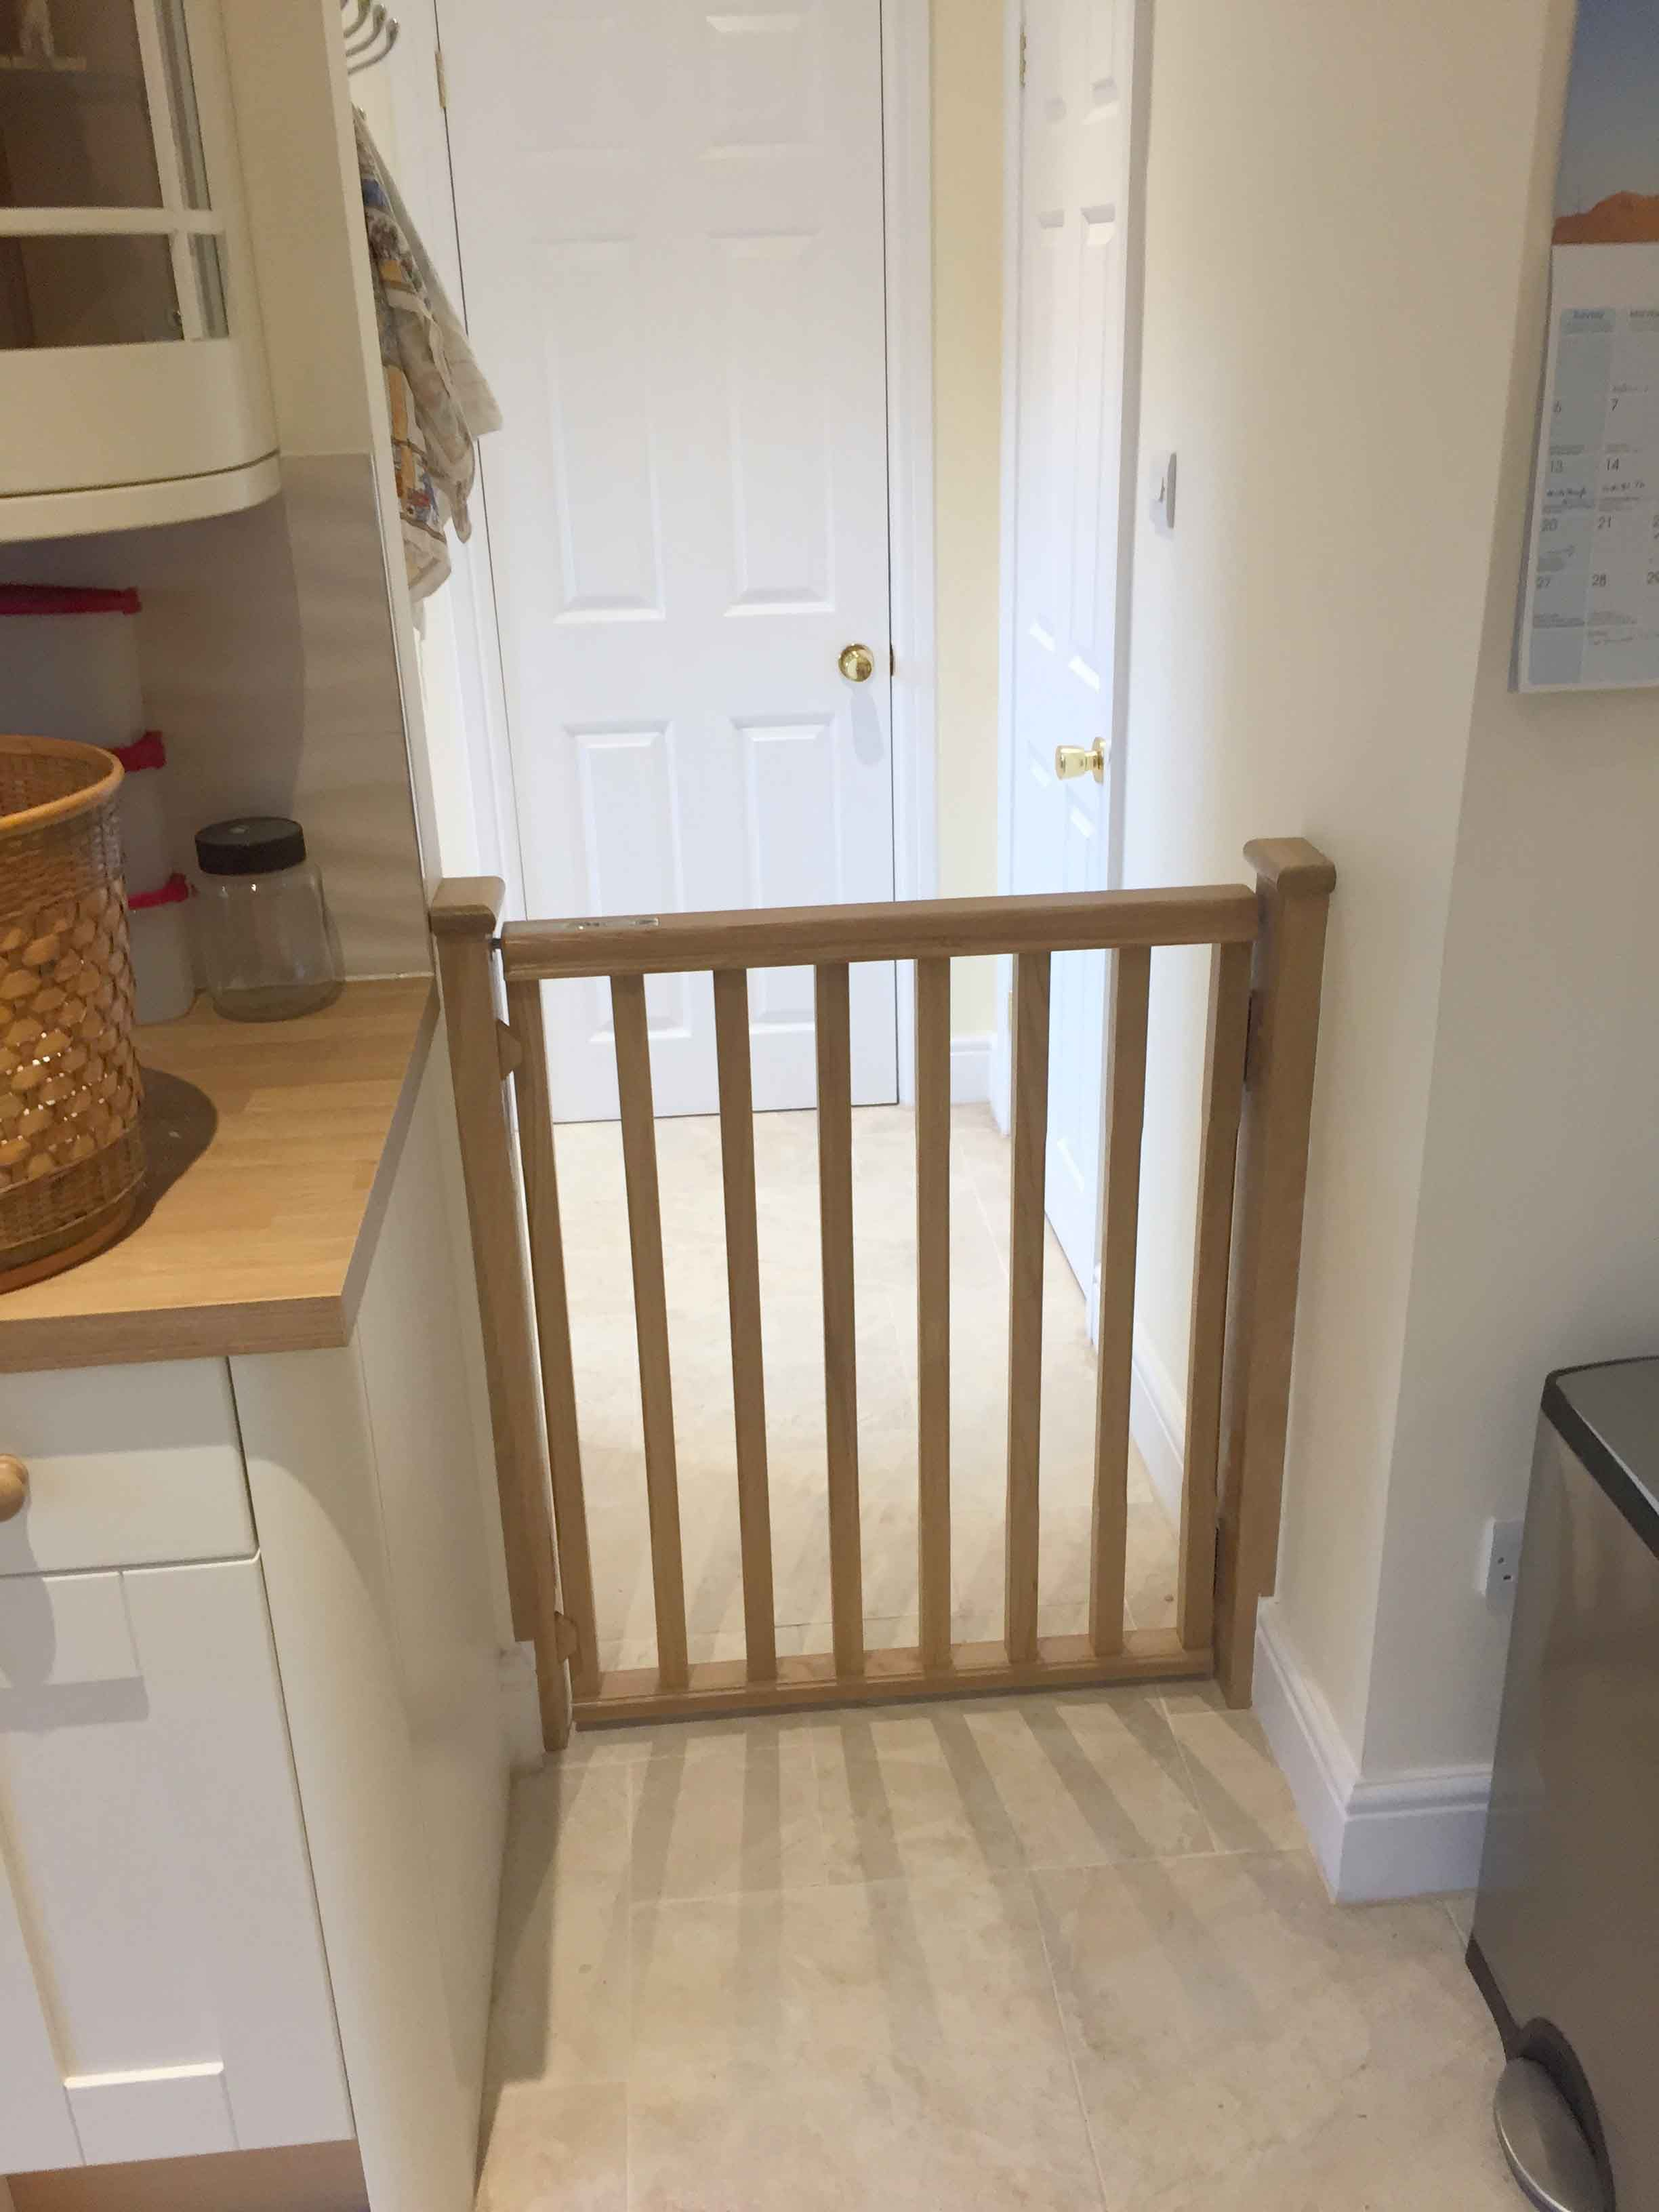 Stair Gates Horkesley Joinery Ltd Stair gate, Home